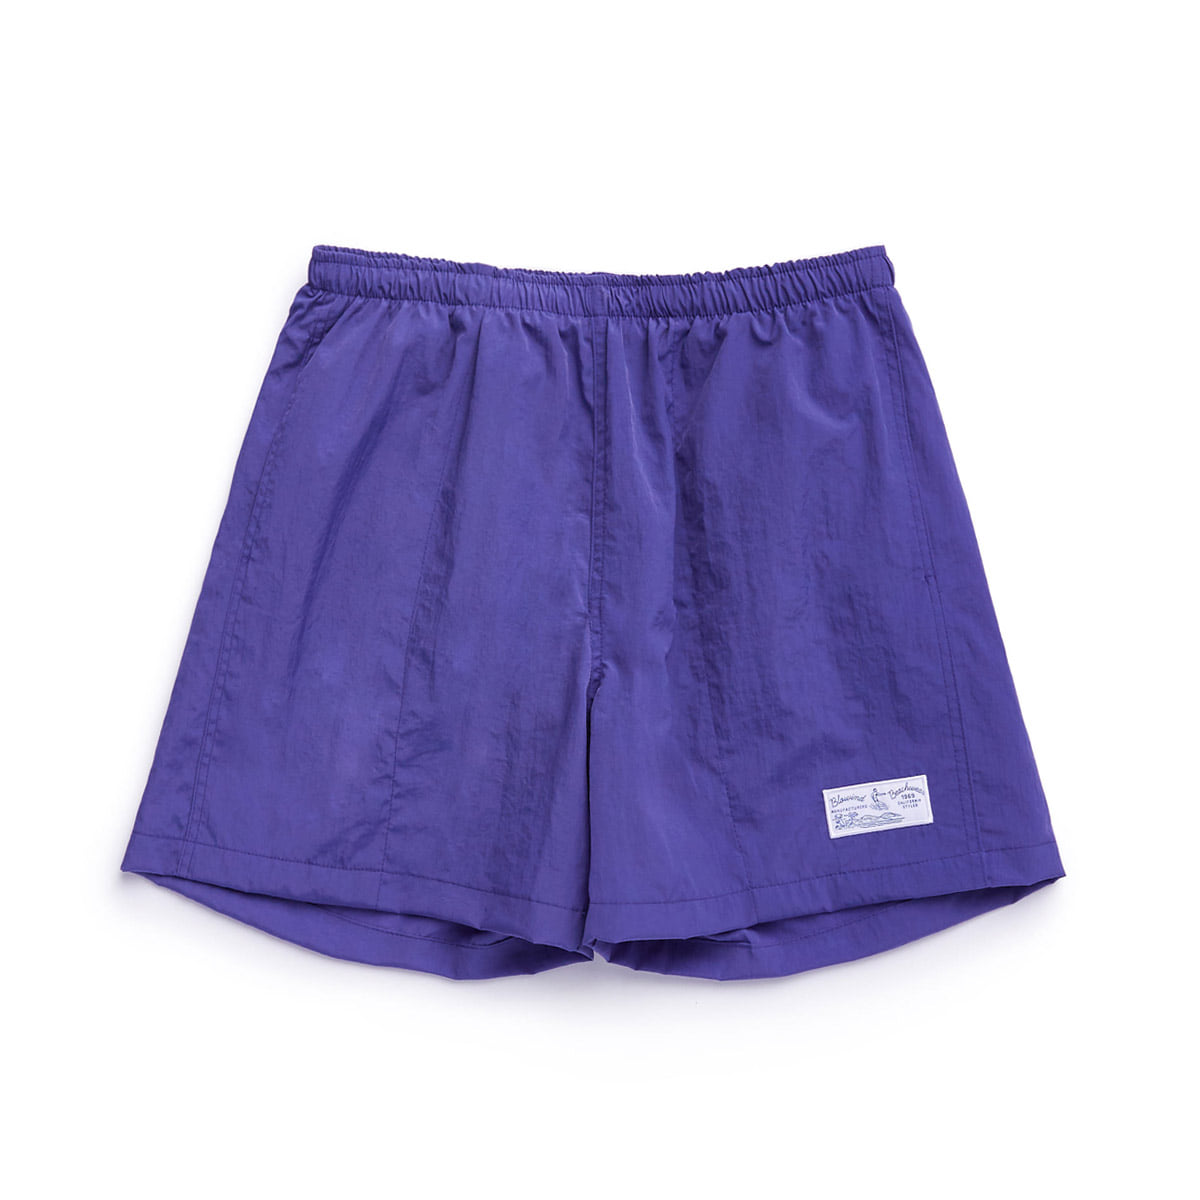 [BLOWIND] RESORT SHORTS 'PURPLE'